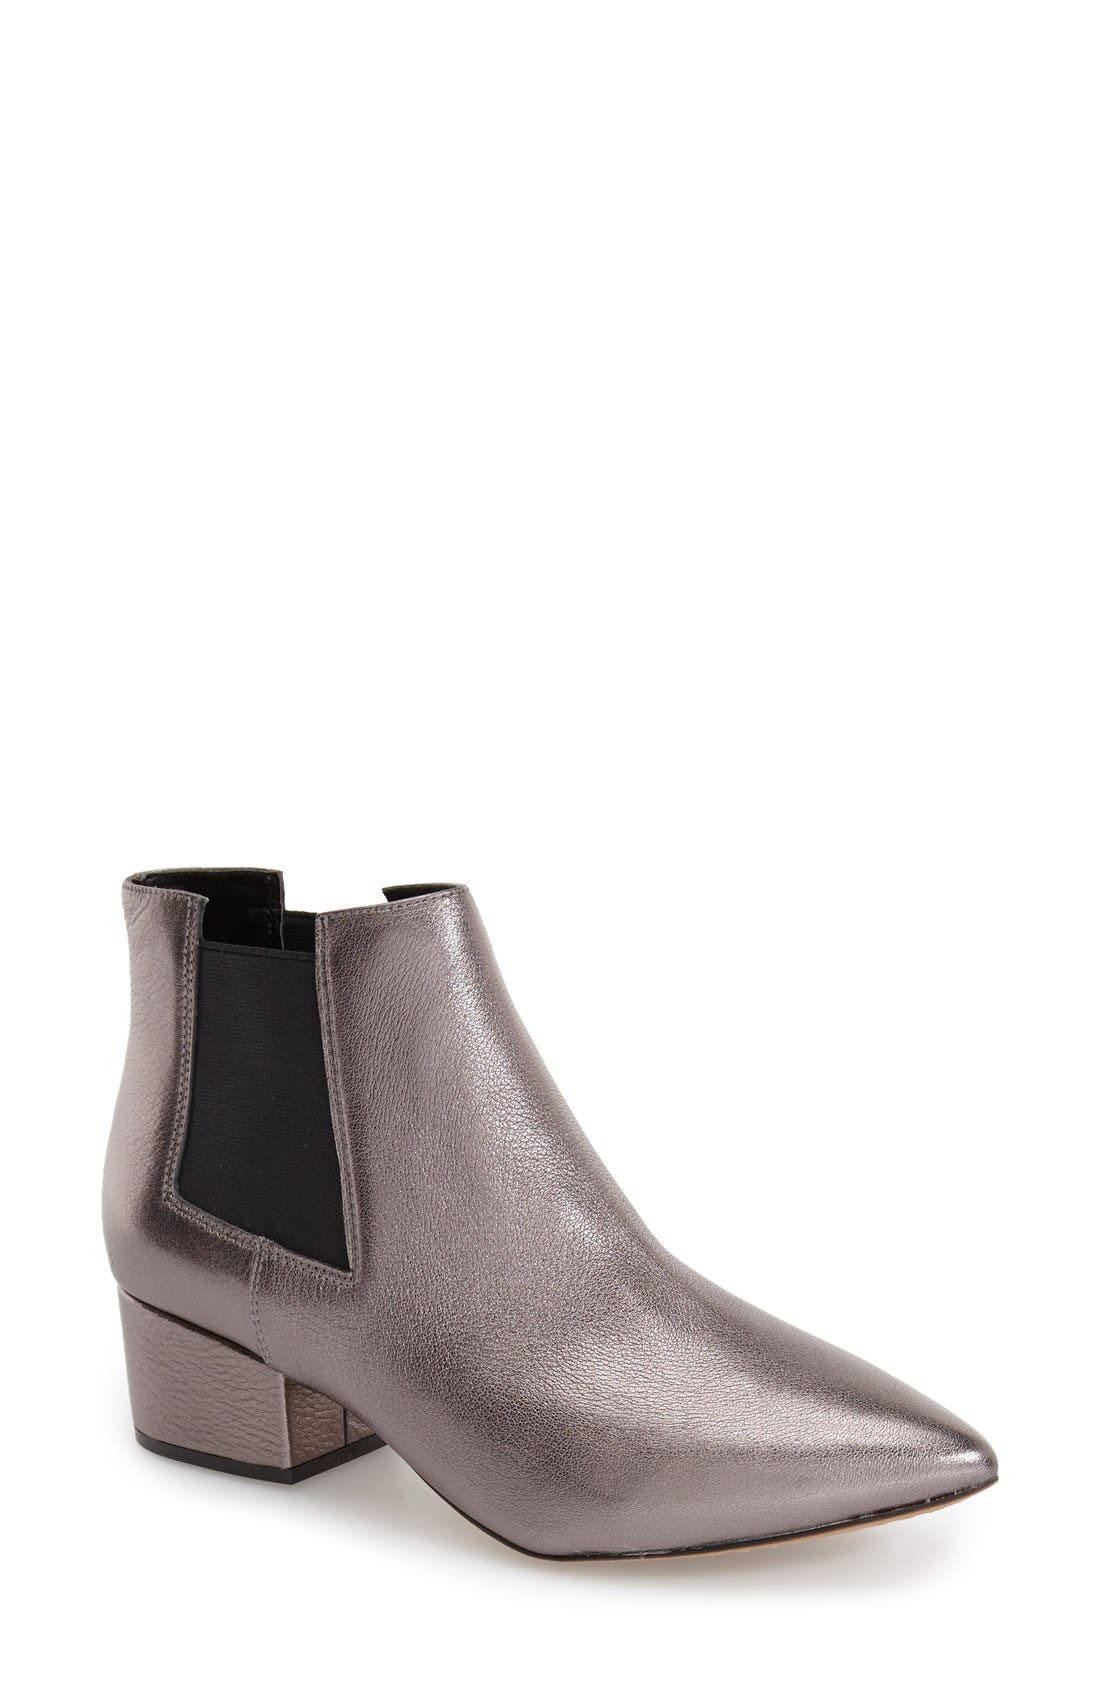 Main Image - French Connection 'Ronan' Bootie